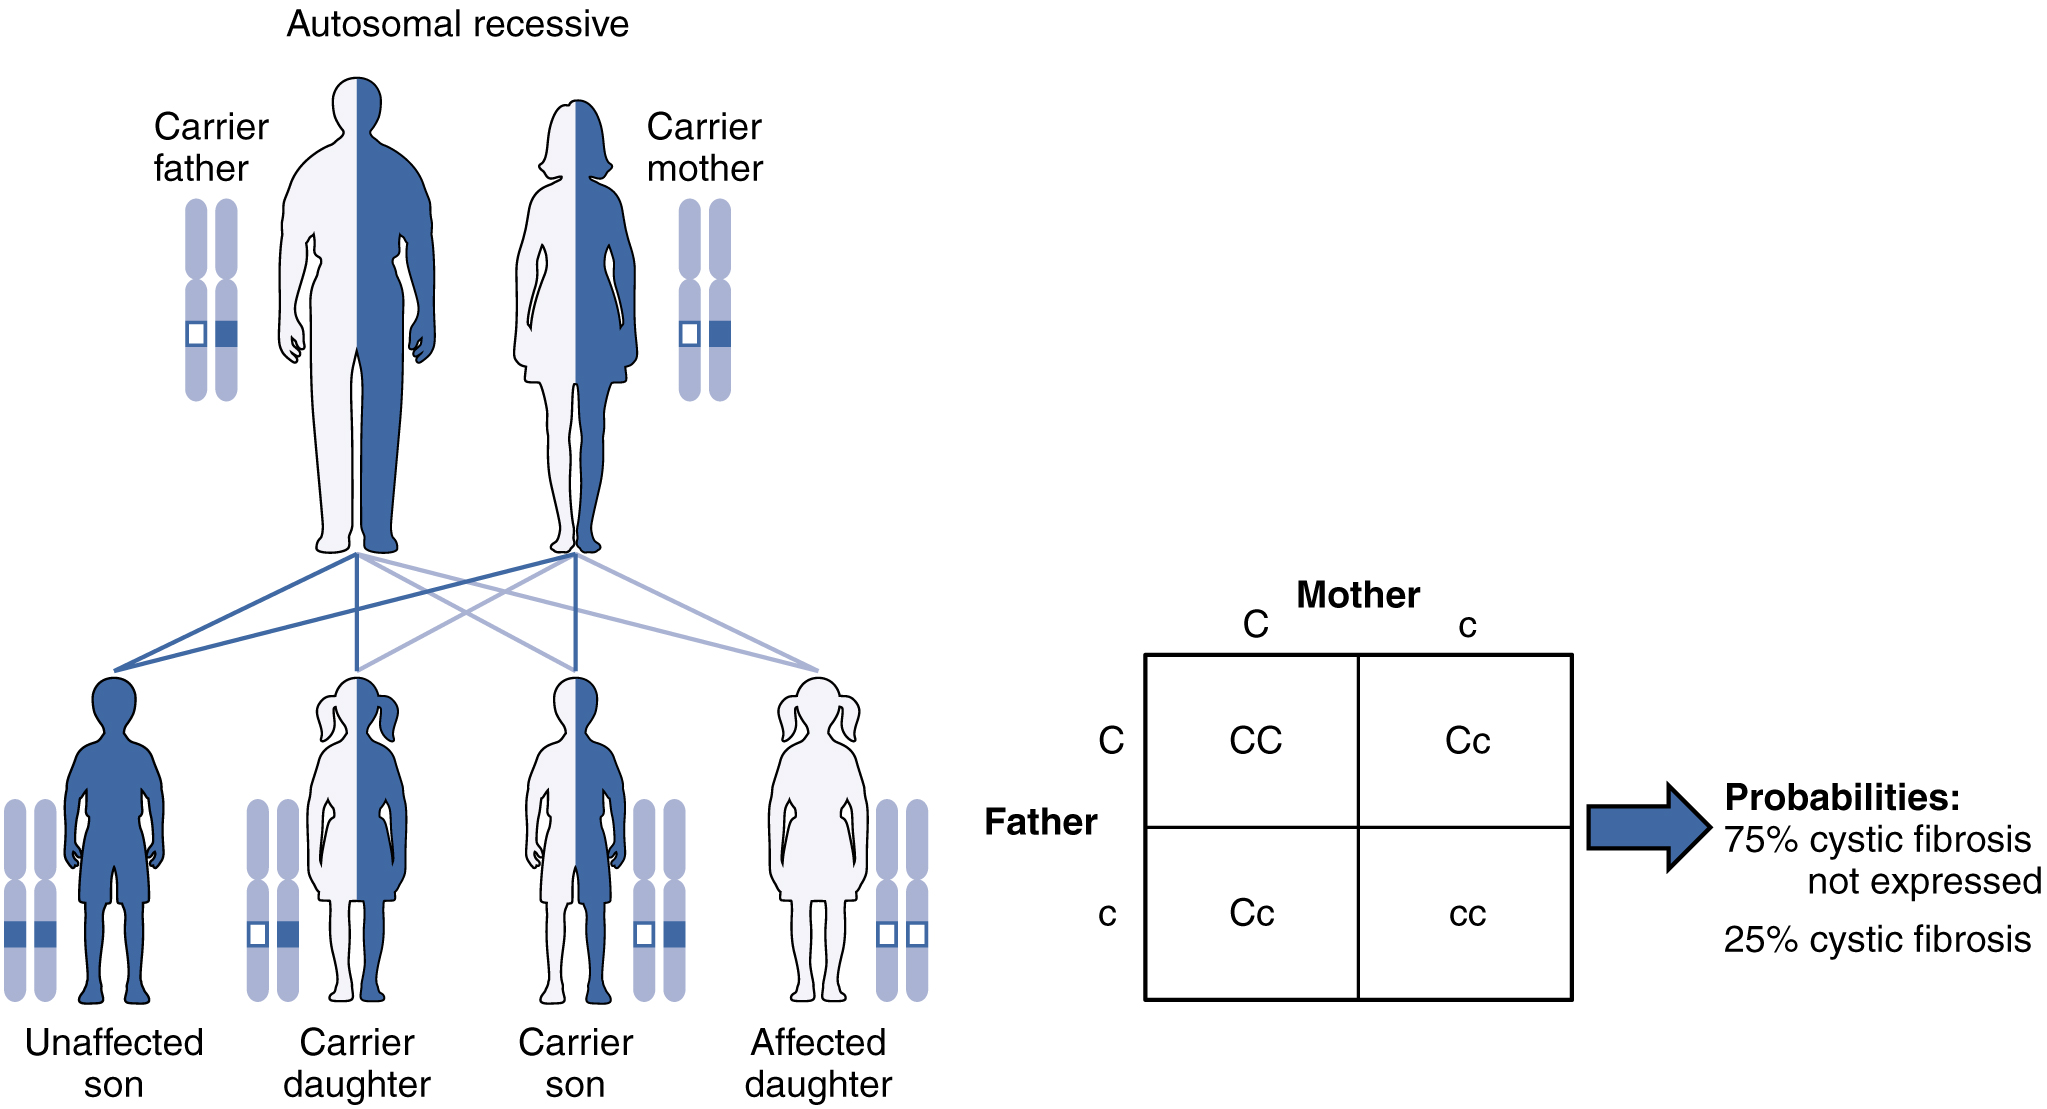 In this figure, the offspring of a carrier father and carrier mother are shown. The first generation has one unaffected son, one affected daughter and one carrier son and one carrier daughter. The second generation cross shows seventy five percent unaffected and twenty five percent affected with cystic fibrosis.